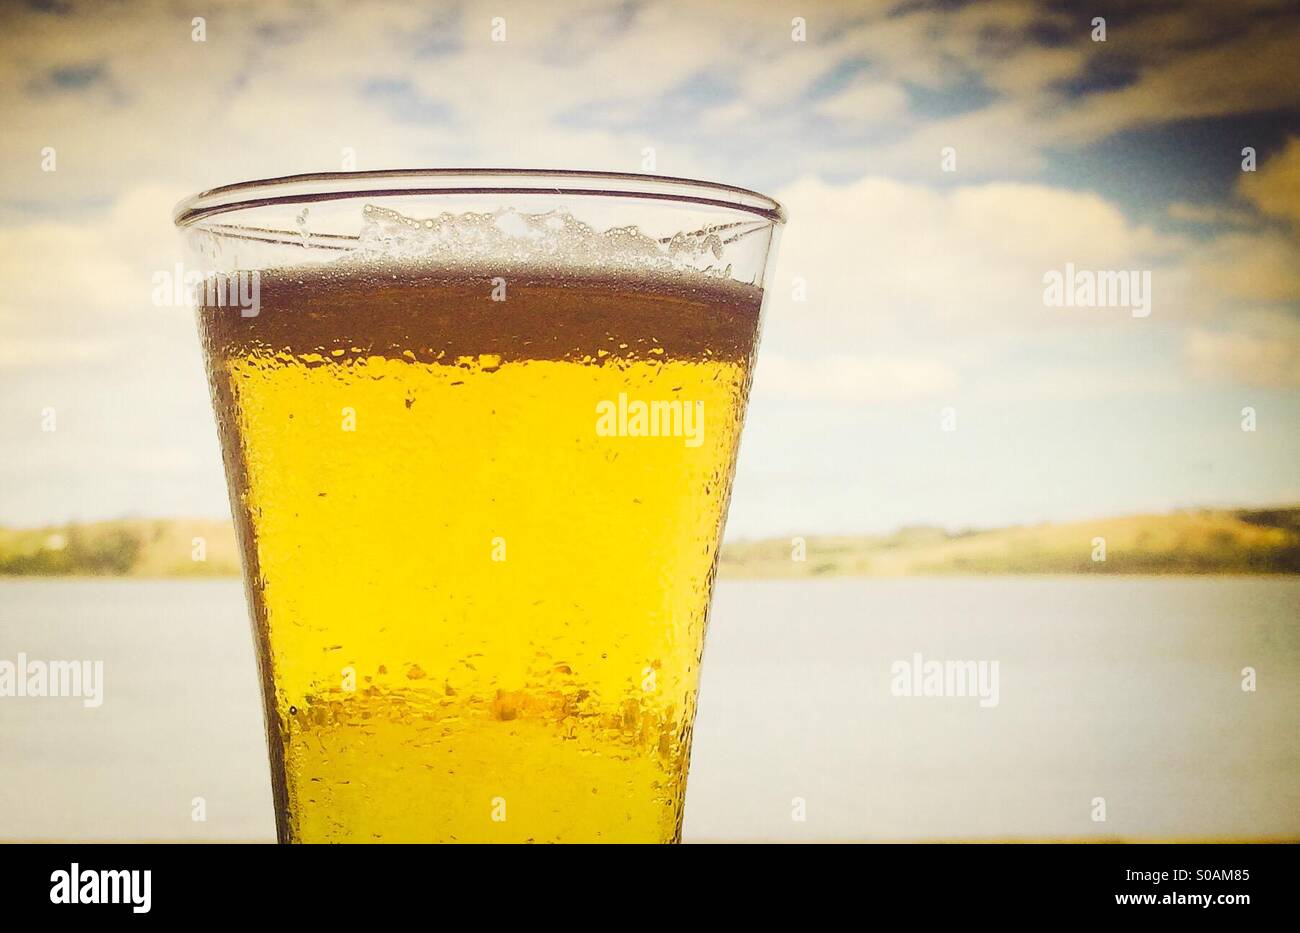 Cold beer on a hot day against summer sky. - Stock Image